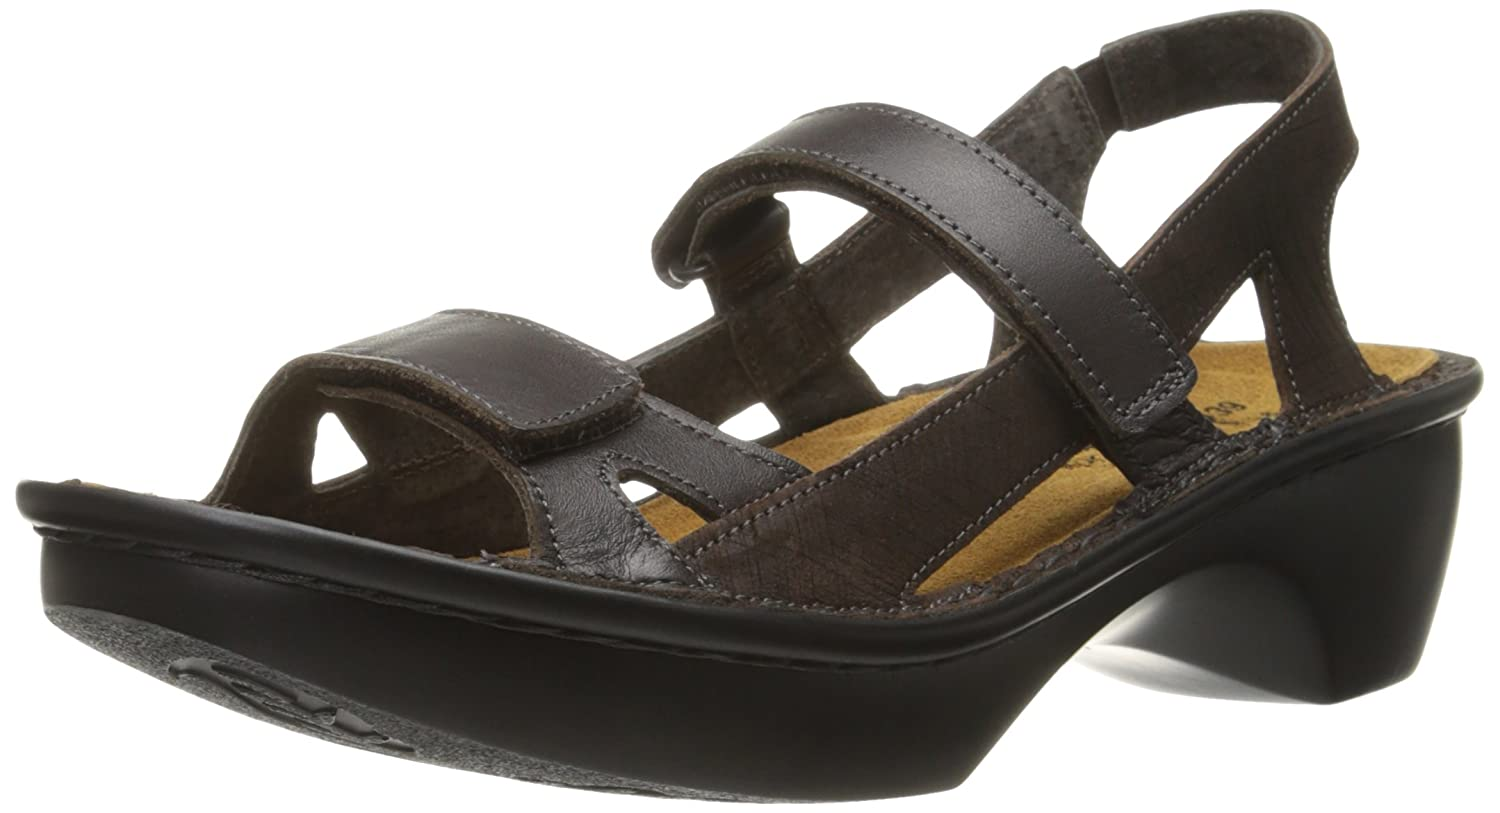 NAOT Women's Seoul Wedge Sandal B00LT48BZ2 37 EU/6 - 6.5 M US|French Roast/Mine Brown Leather